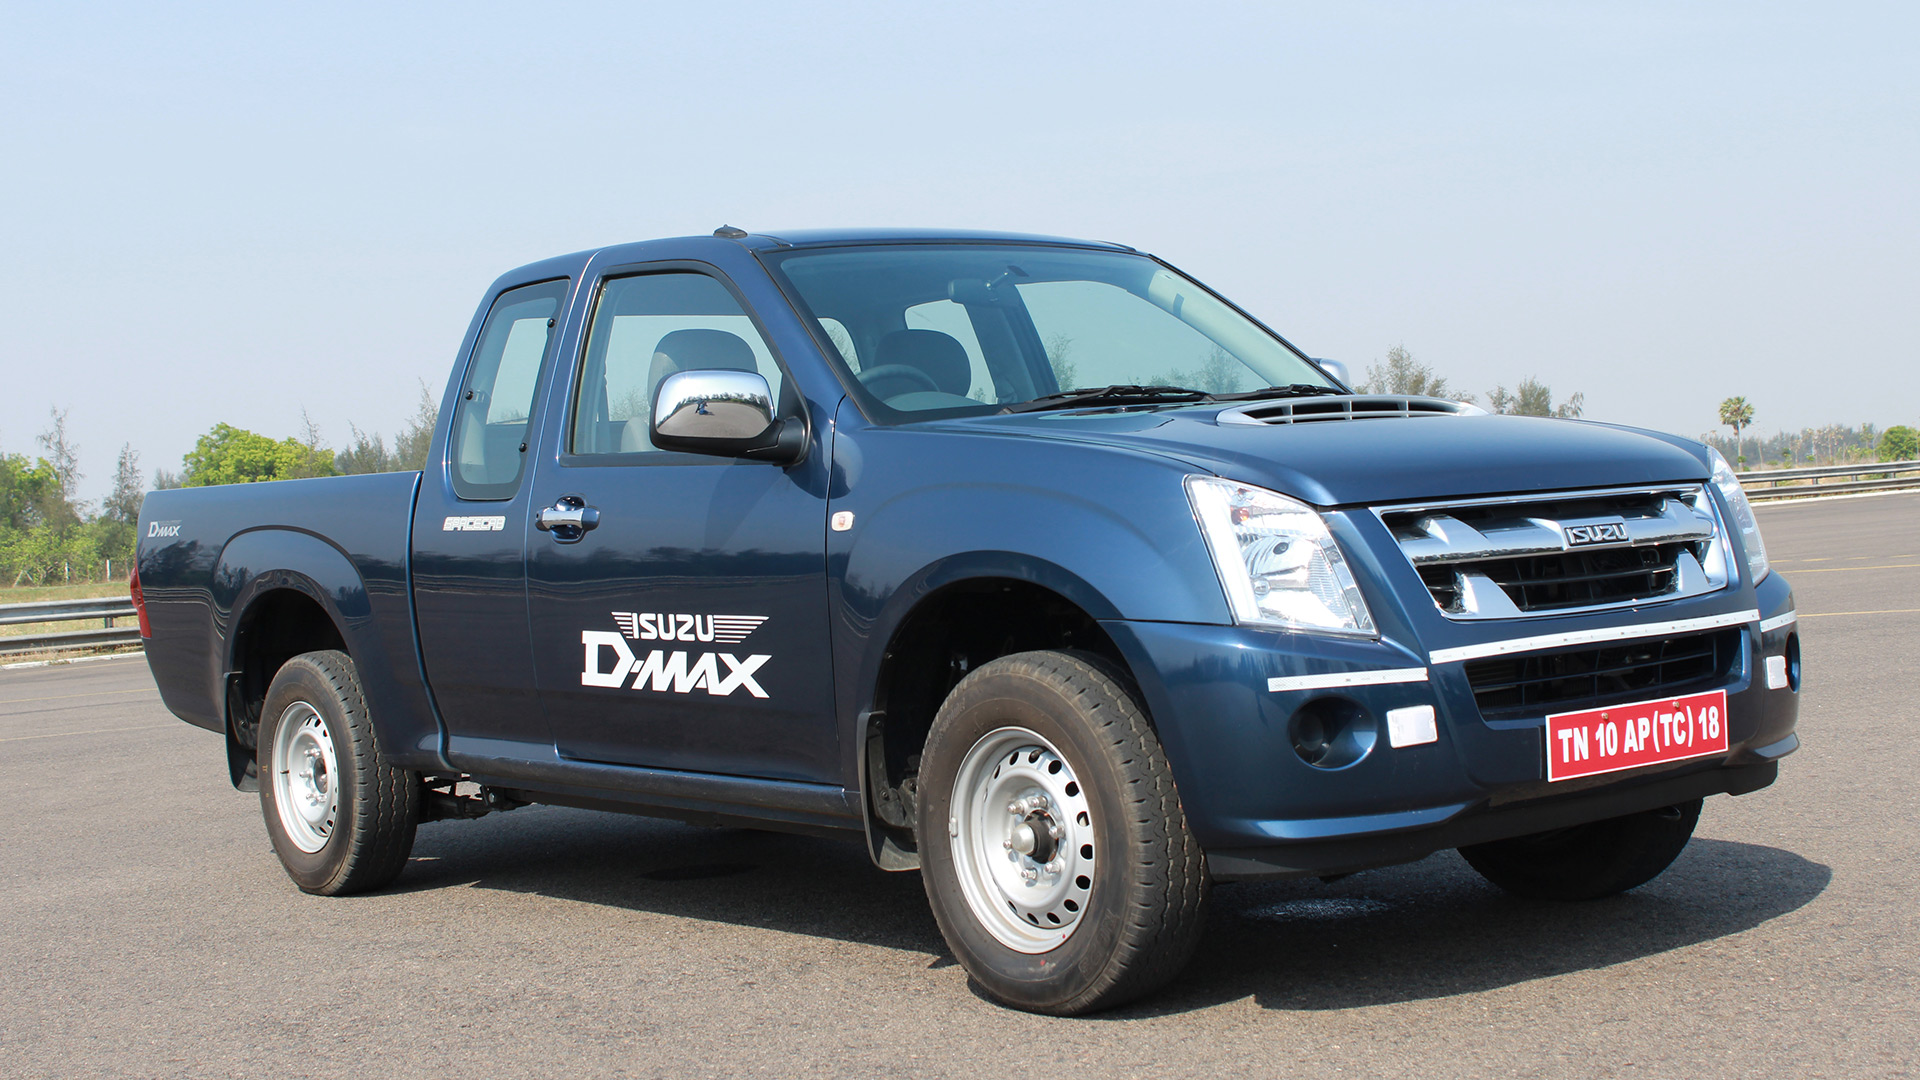 Isuzu D-Max 2014 Single cab